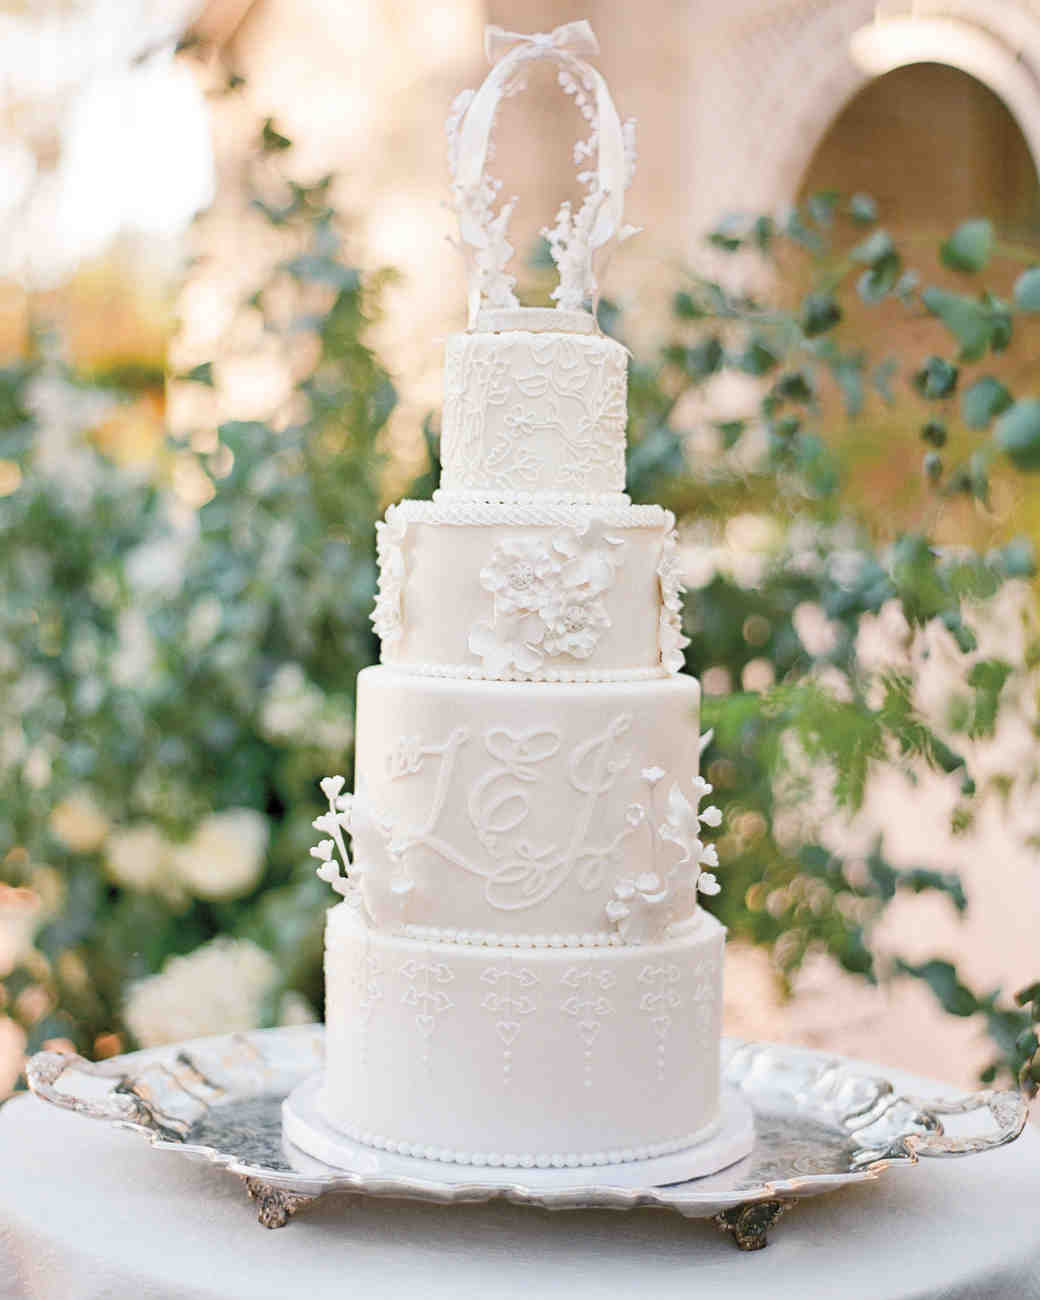 White Royal-Inspired Wedding Cake